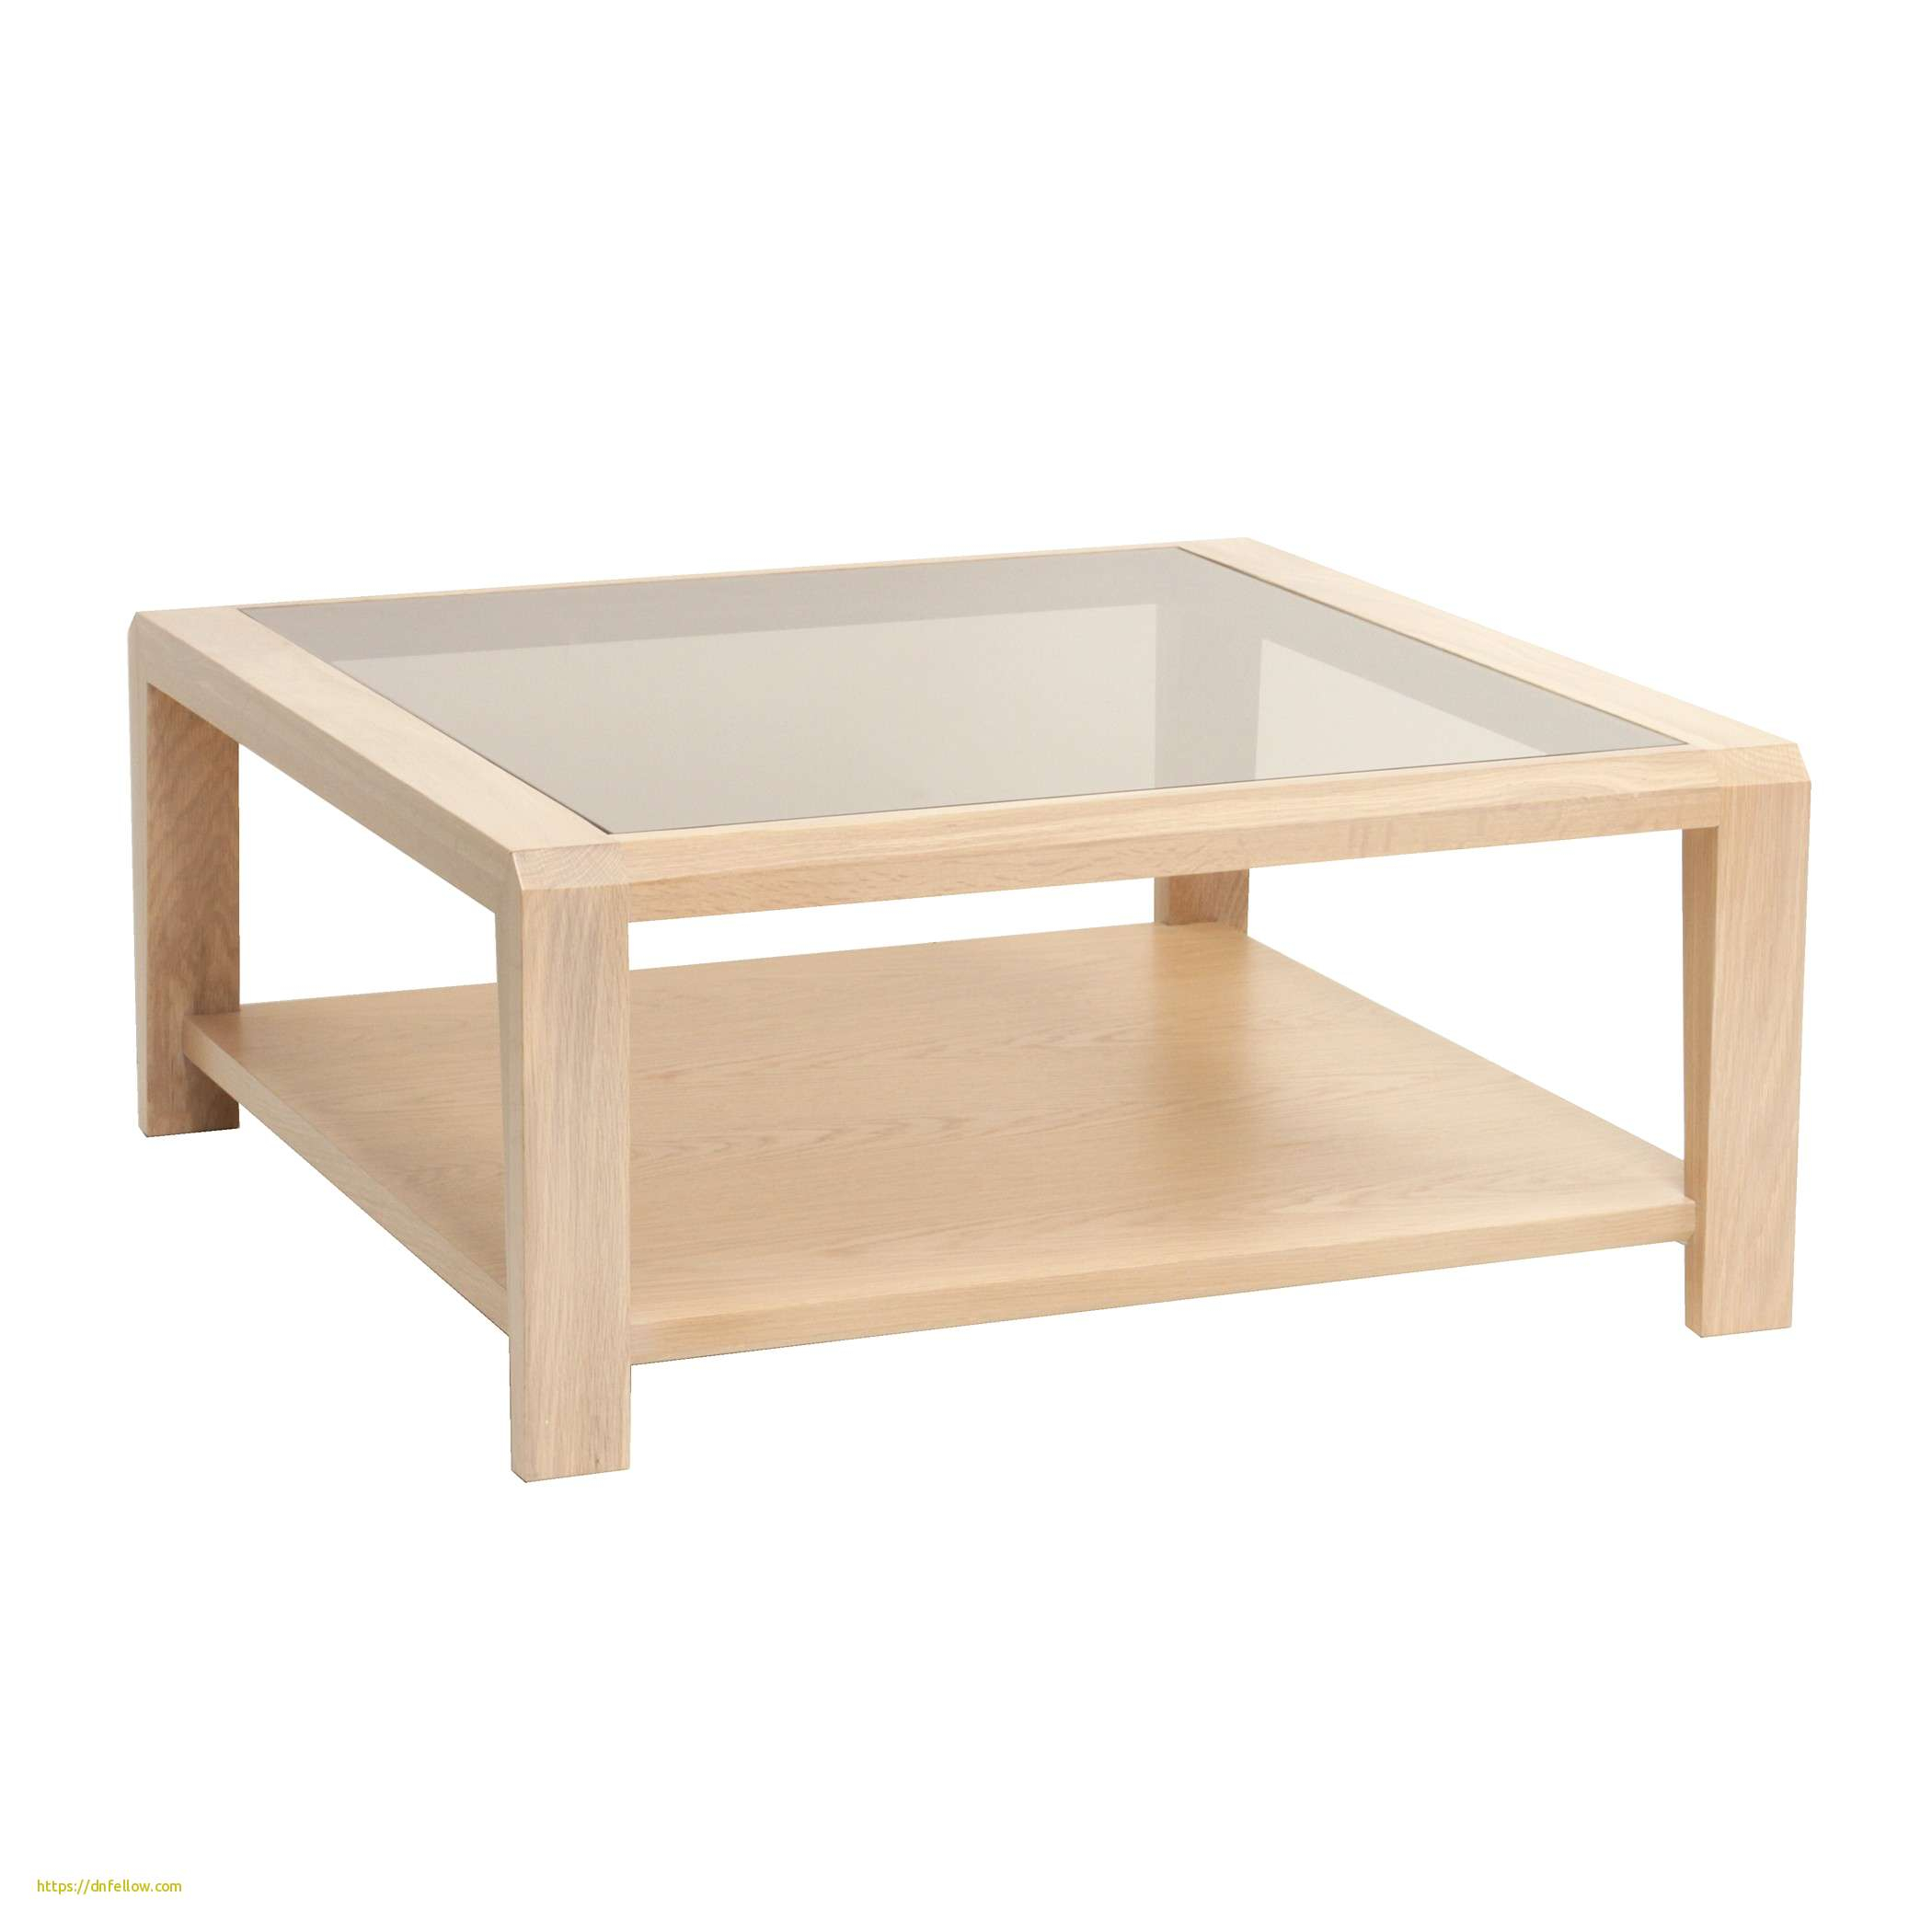 Fullsize Of Large Square Coffee Table